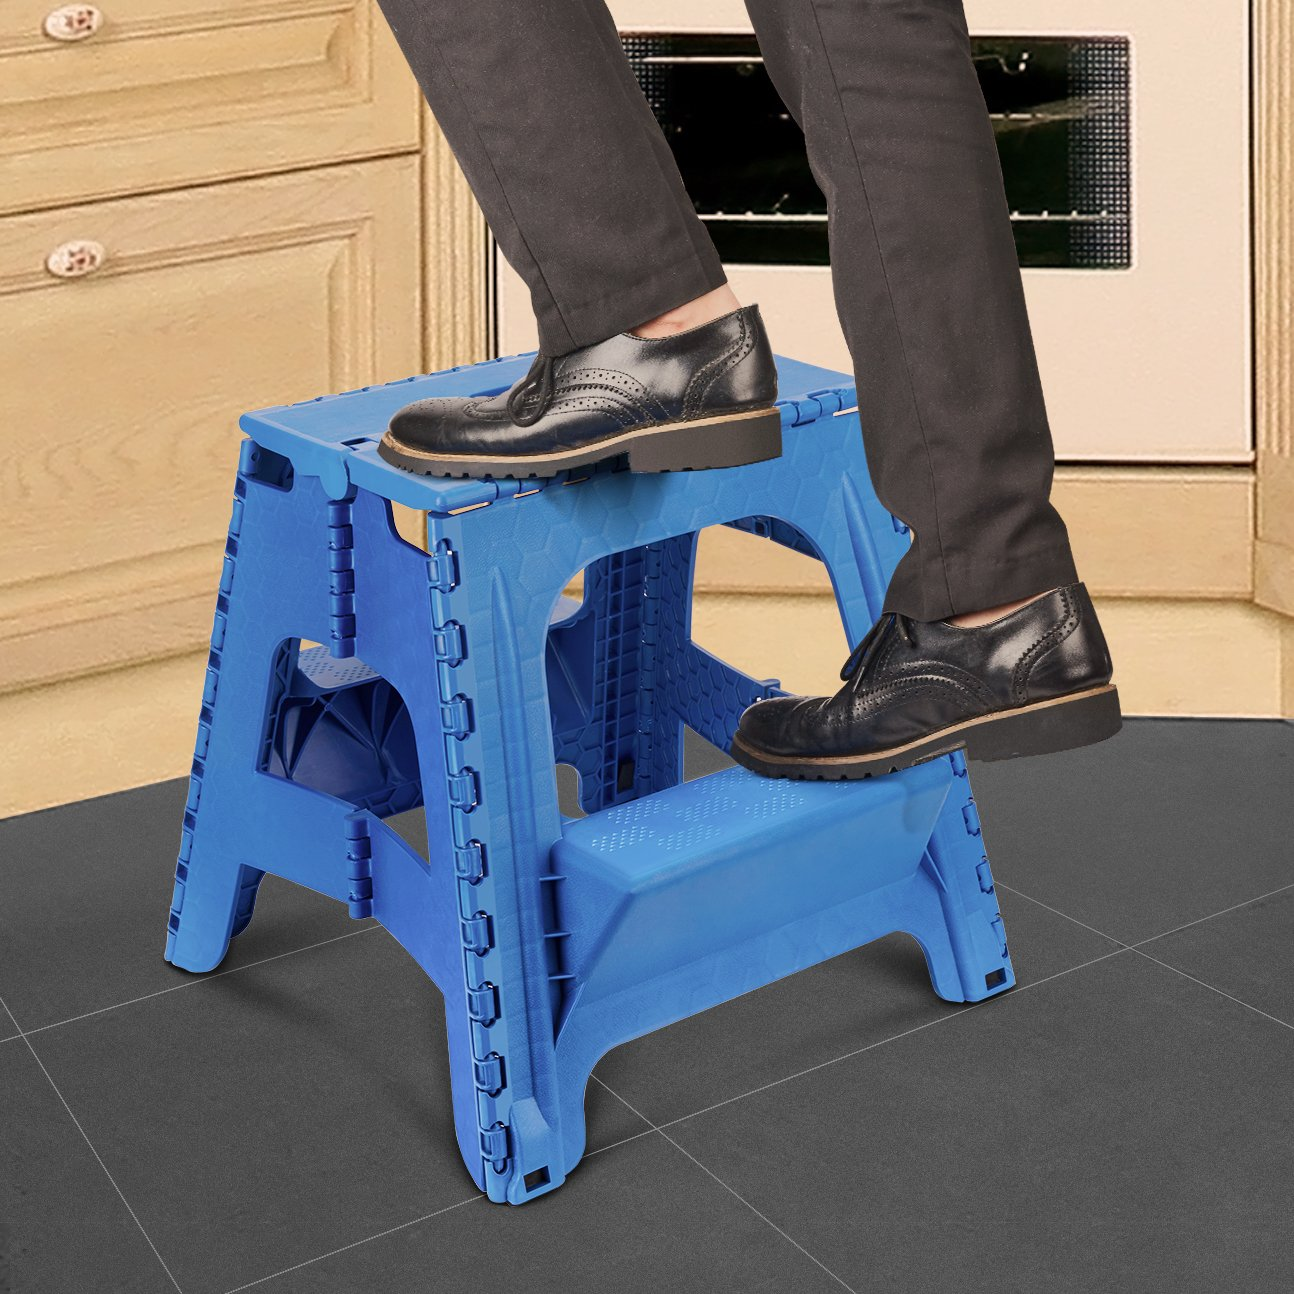 2 In 1 Step Ladder Durable Dual Purpose Folding Stool W